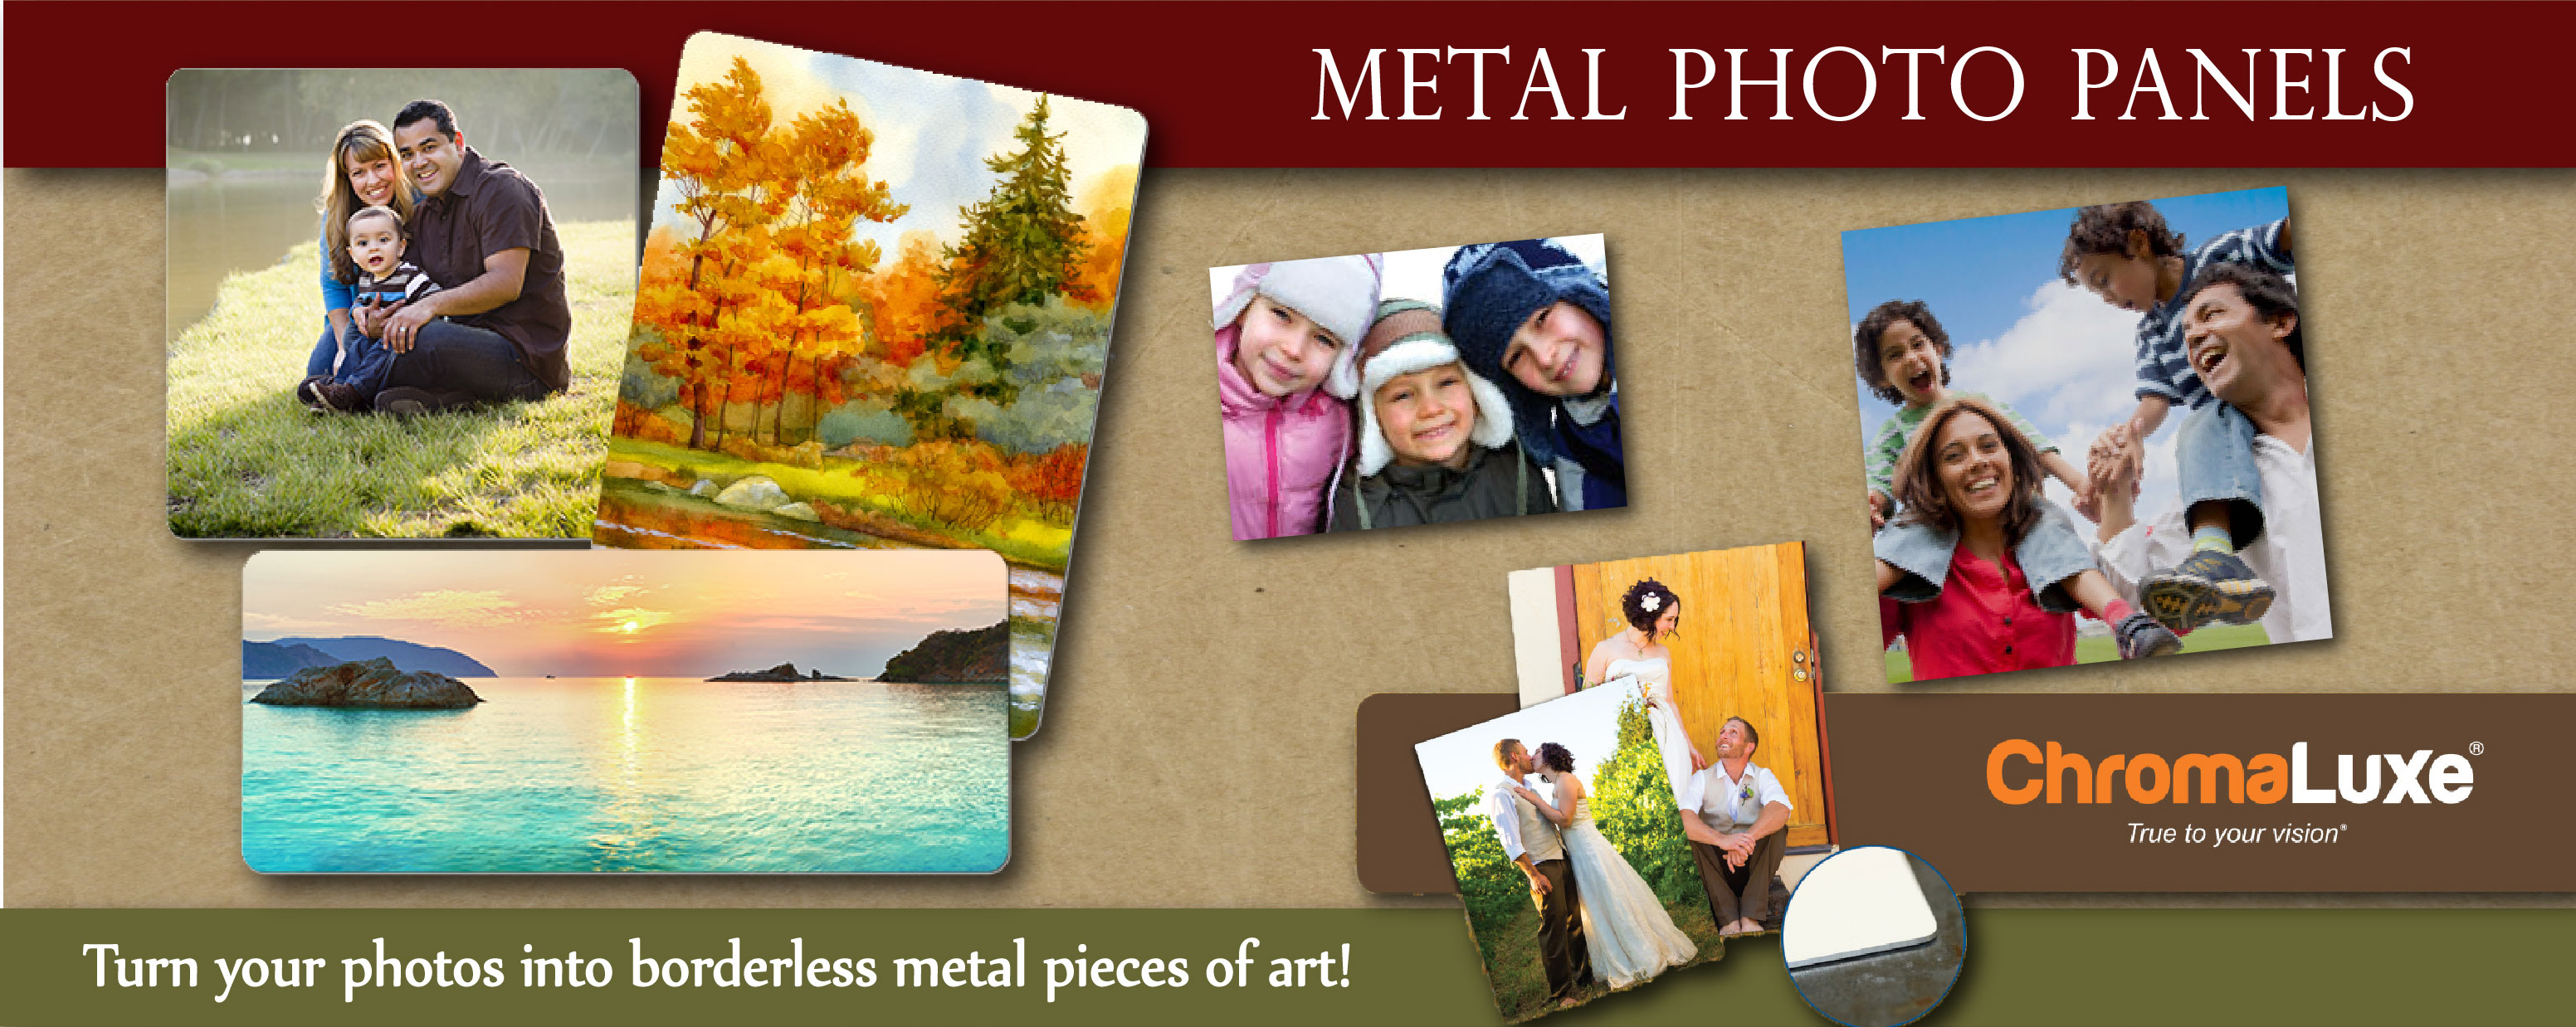 metal-photo-panels-banner-01.jpg